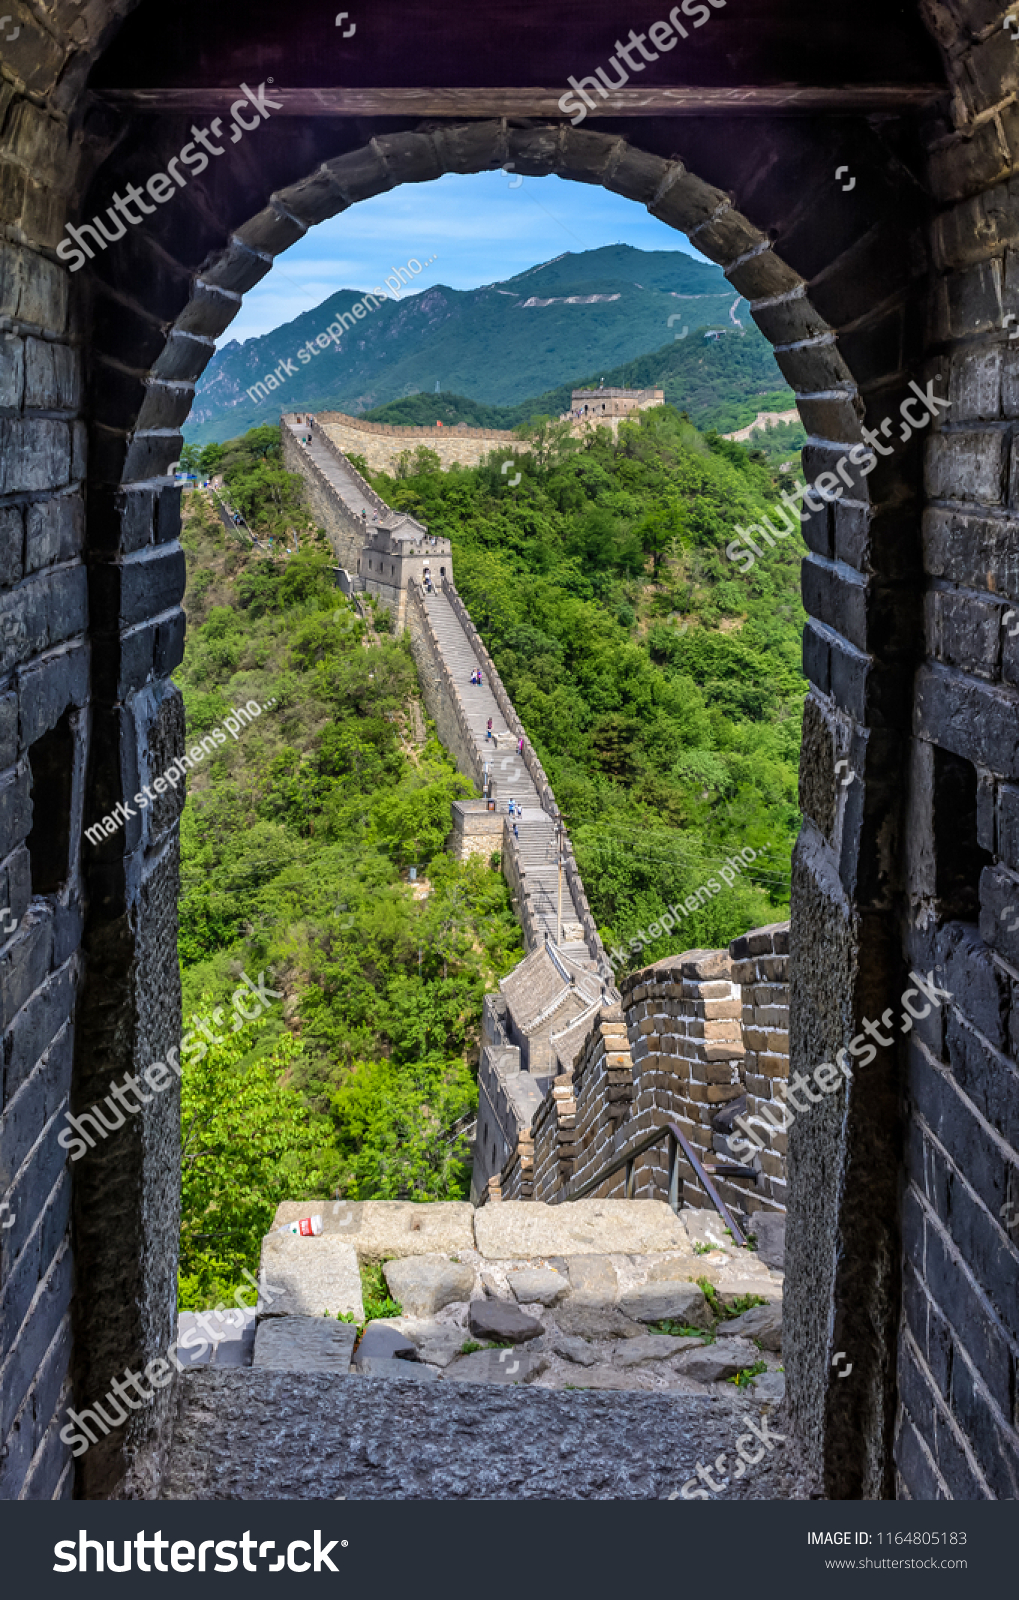 stock-photo-a-view-of-the-great-wall-of-